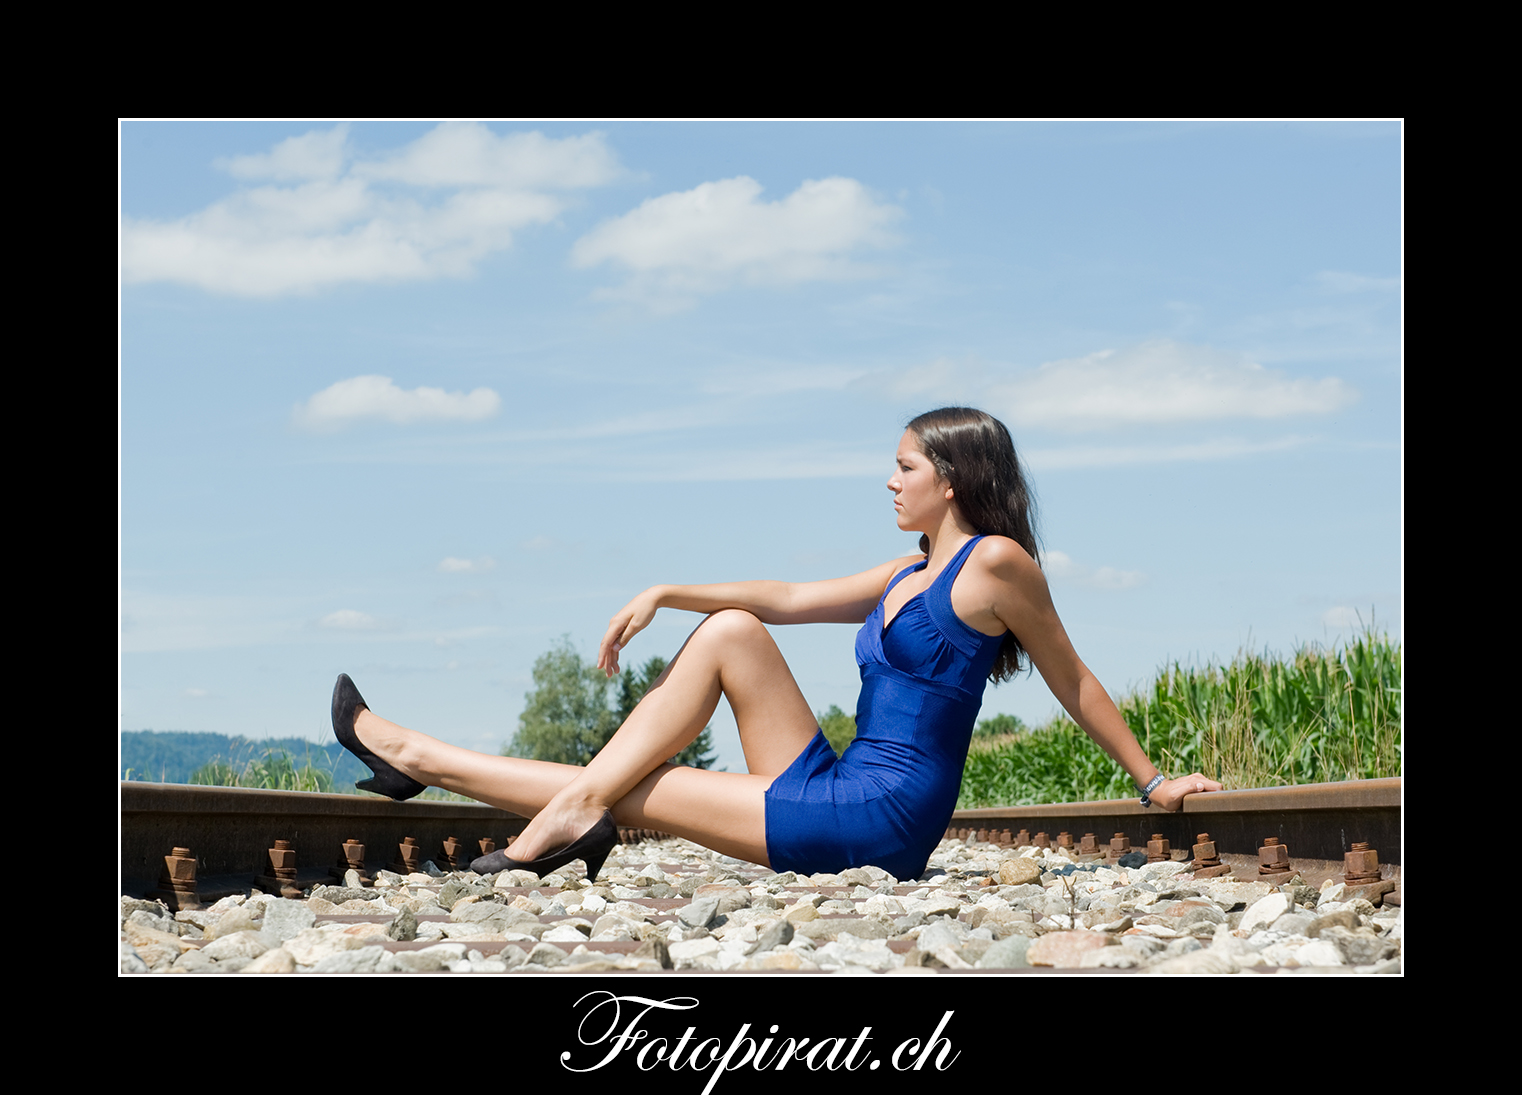 Fotoshooting On Location, Modelagentur, Sportmodel, Fotomodel